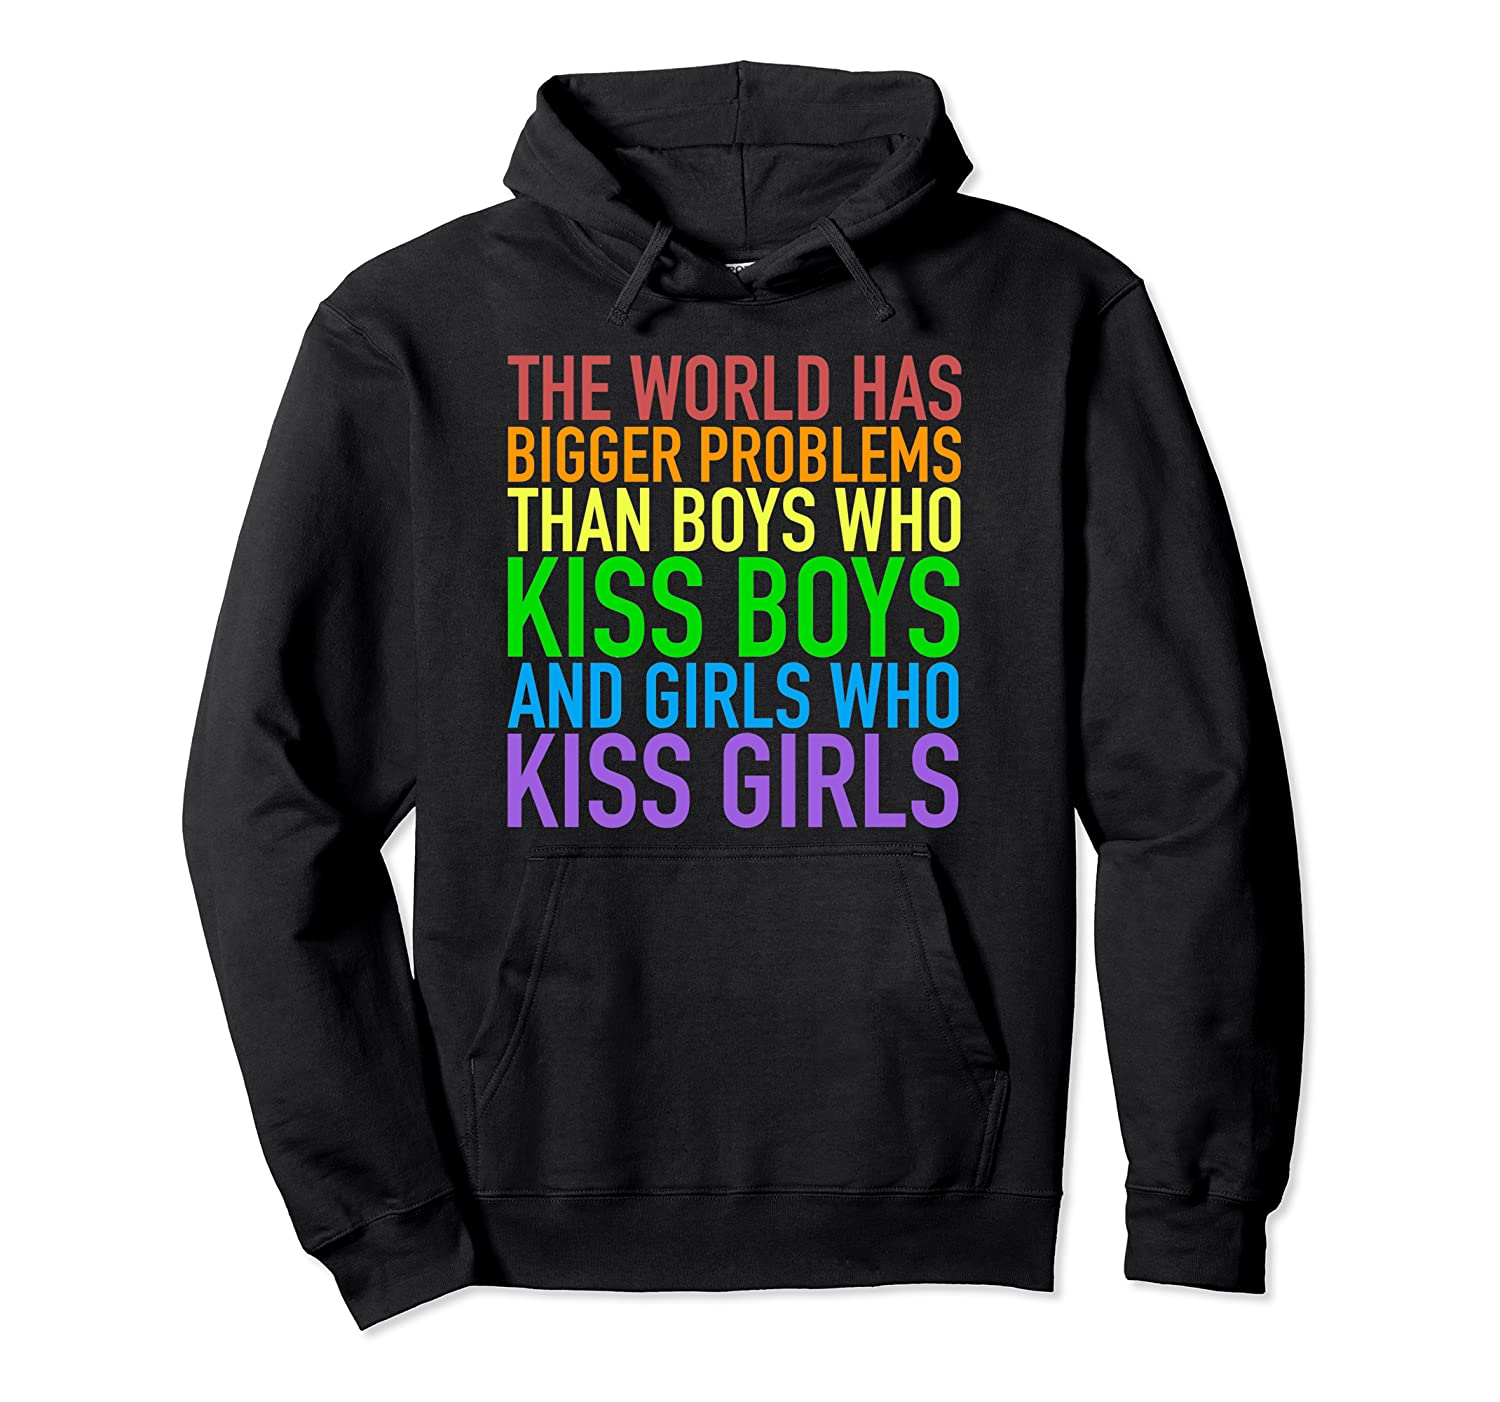 Amazon.com: The World Has Bigger Problems | Gay Pride Hoodie ...